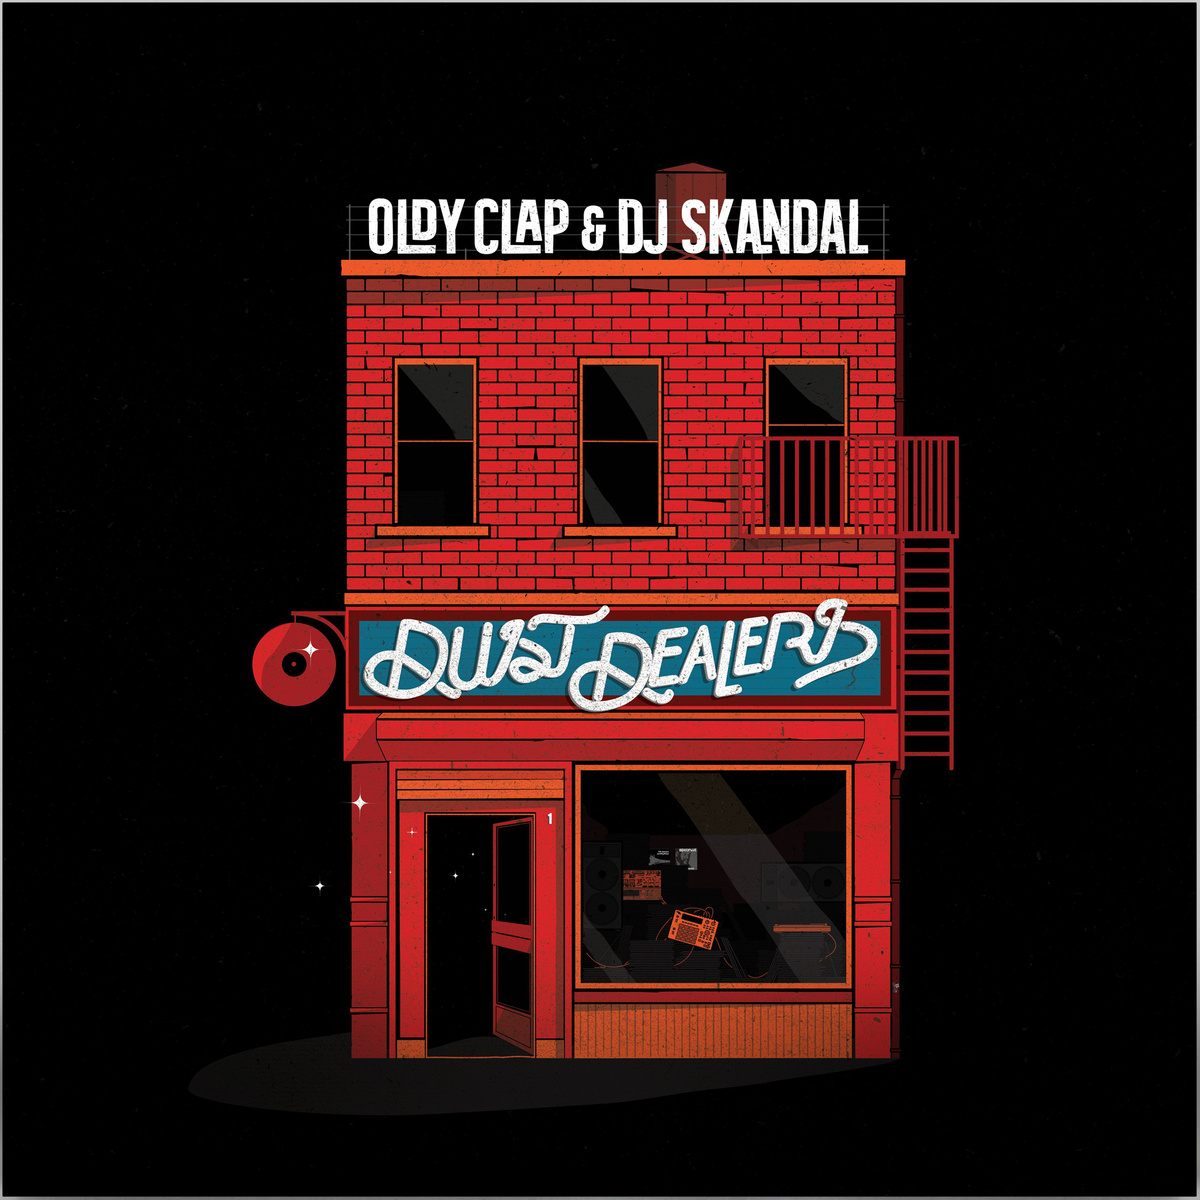 OLDY CLAP & DJ SKANDAL : DUO DE DUST DEALERS